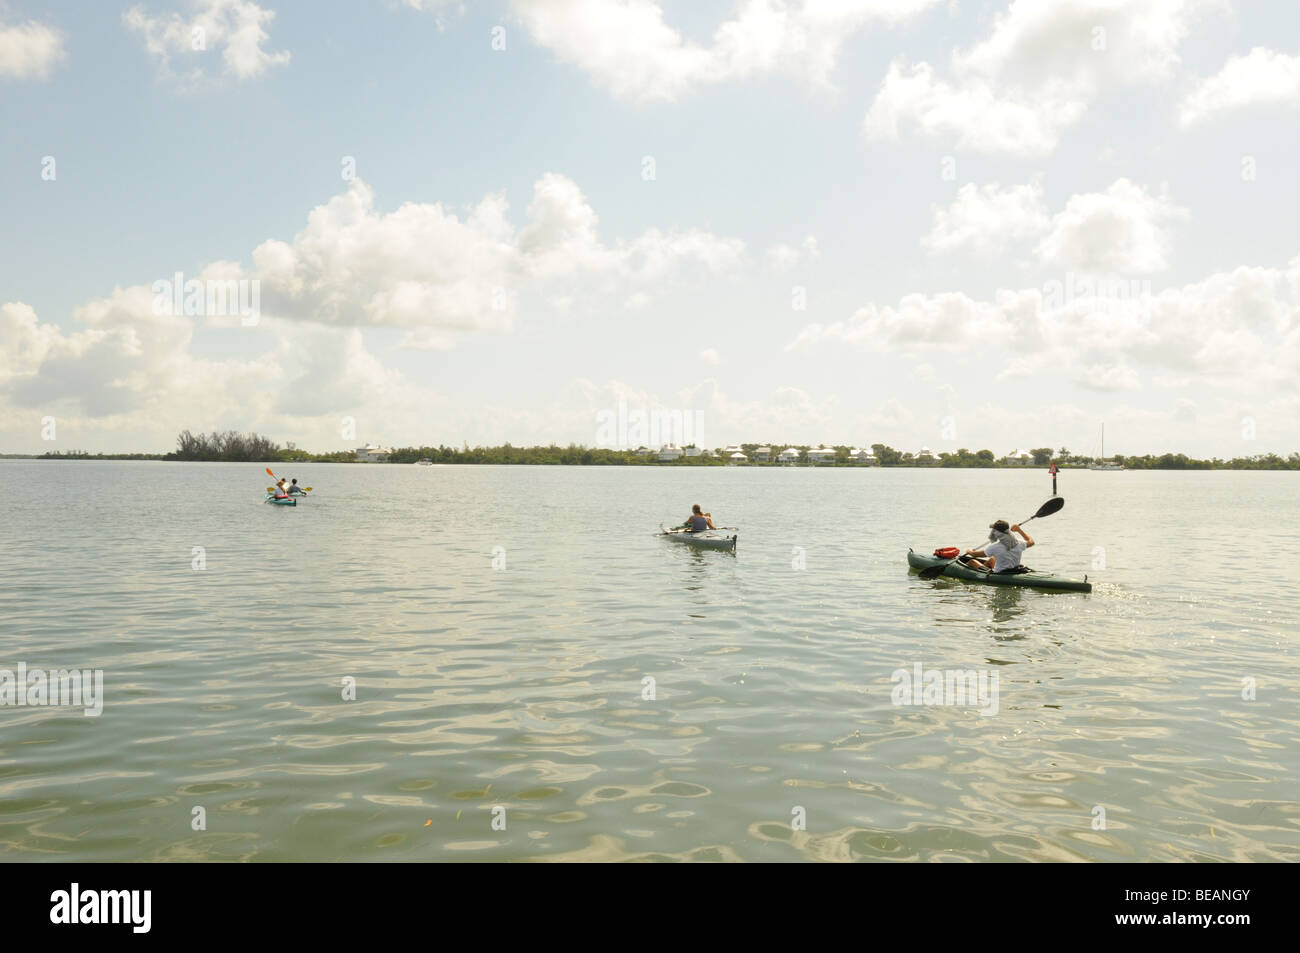 Kayakers paddle across the inter coastal waterway towards Useppa Island, Florida. - Stock Image